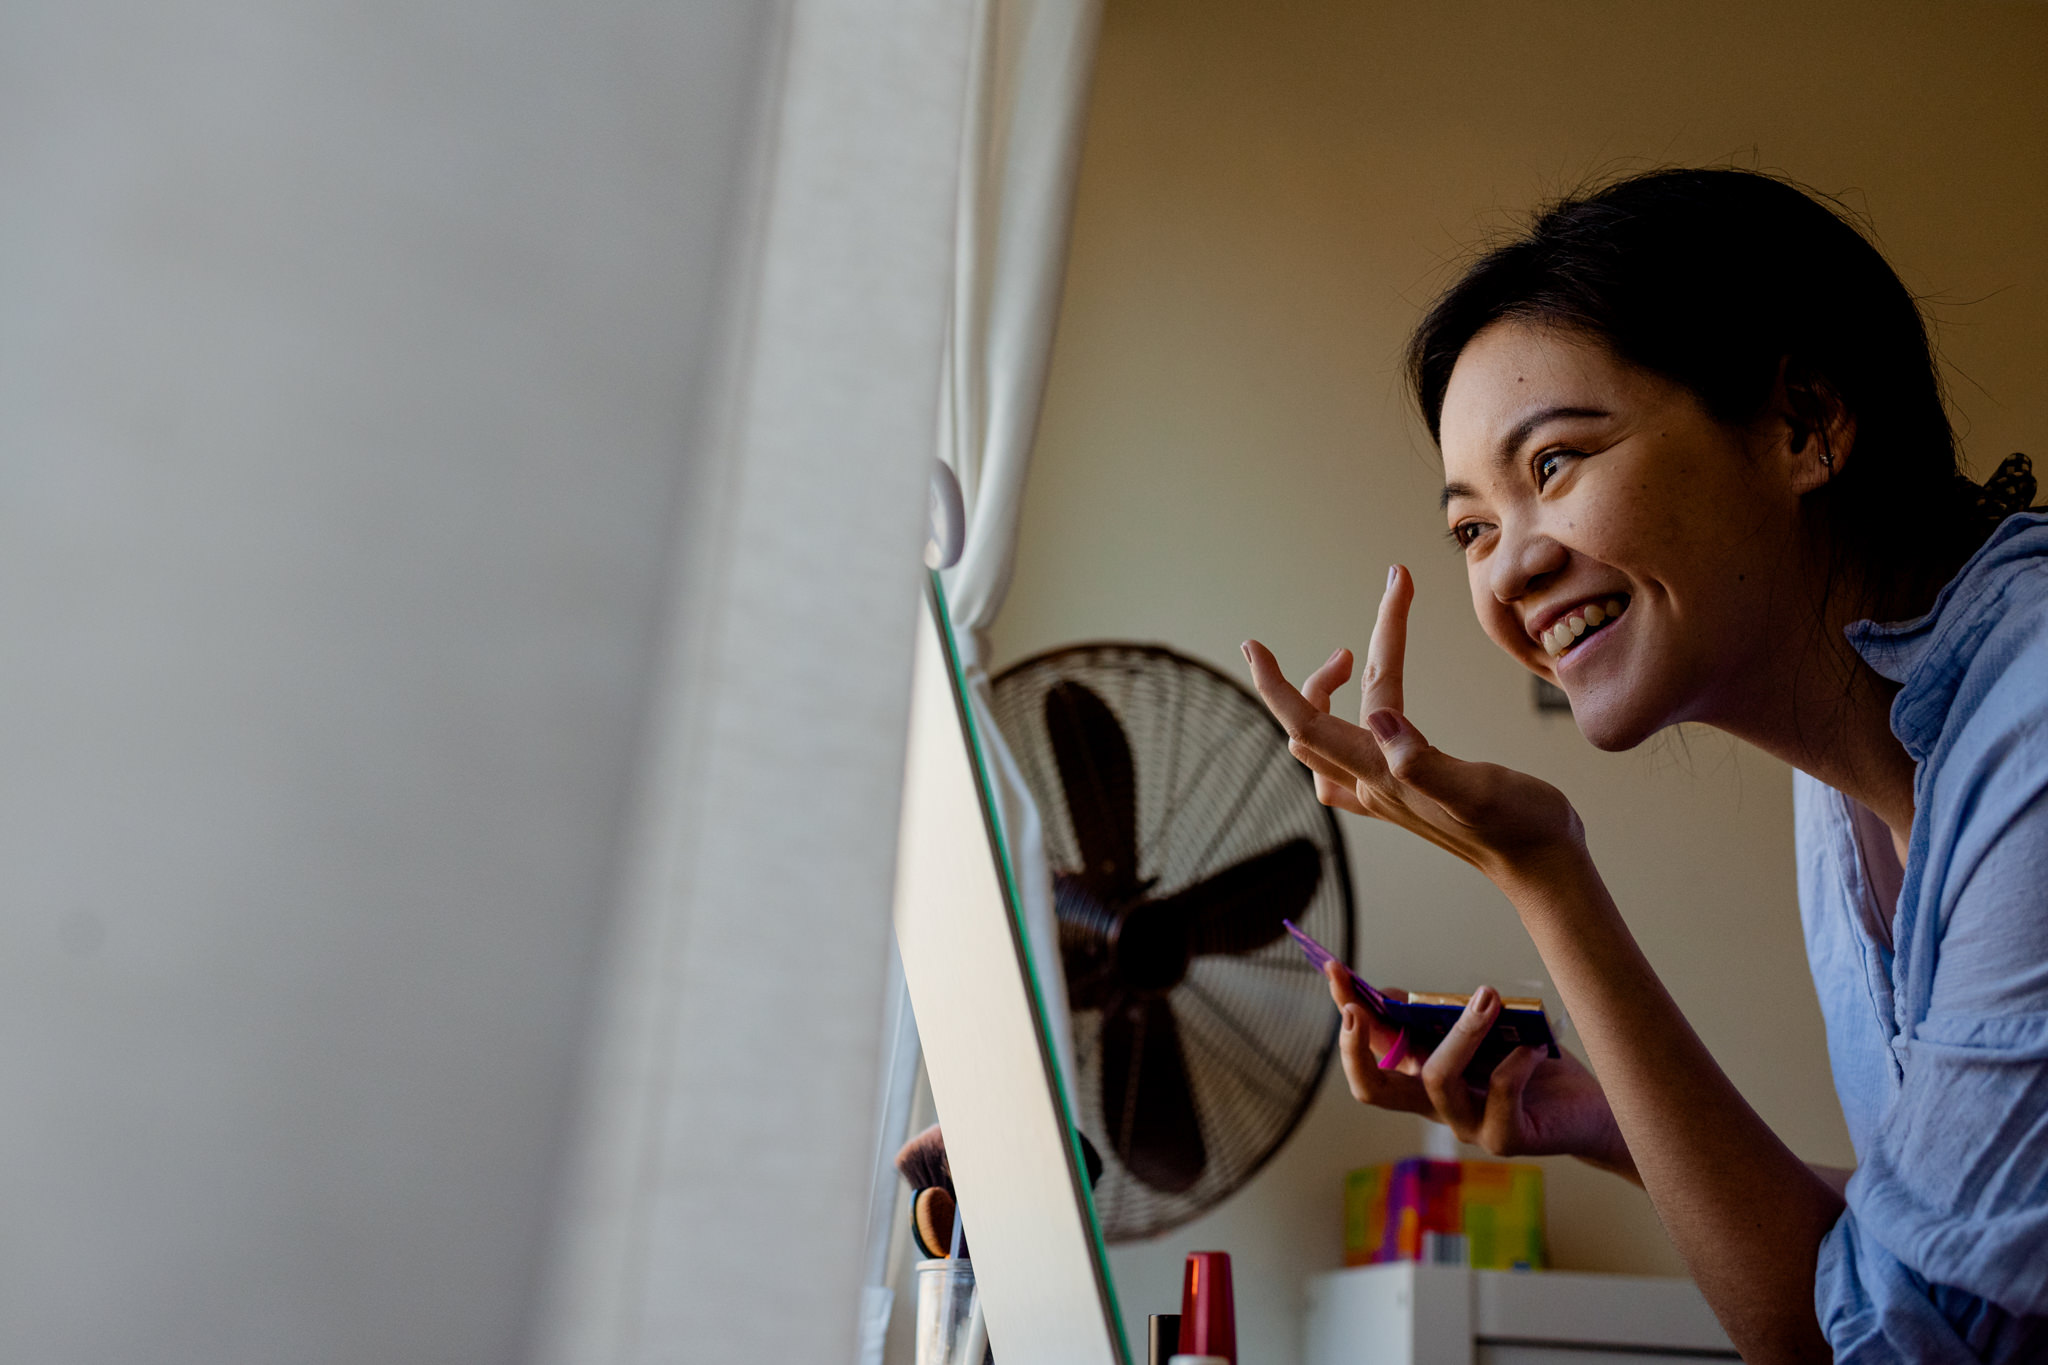 Asian girl laughs as she uses her finger to apply makeup next to a window